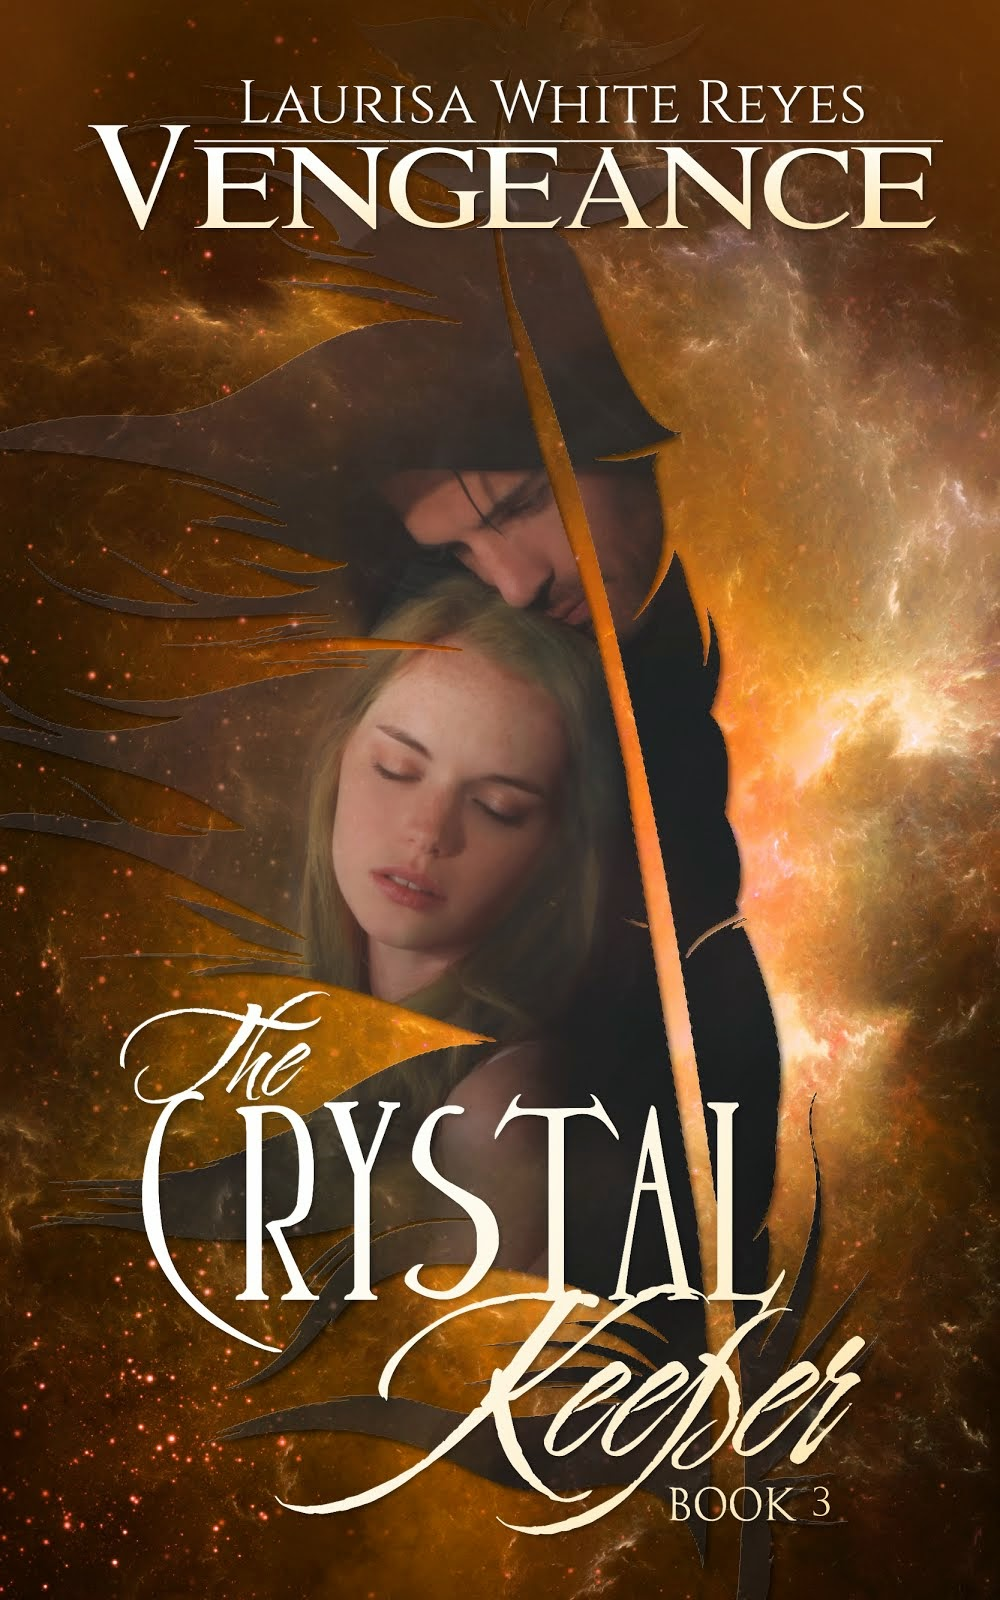 The Crystal Keeper Book 3